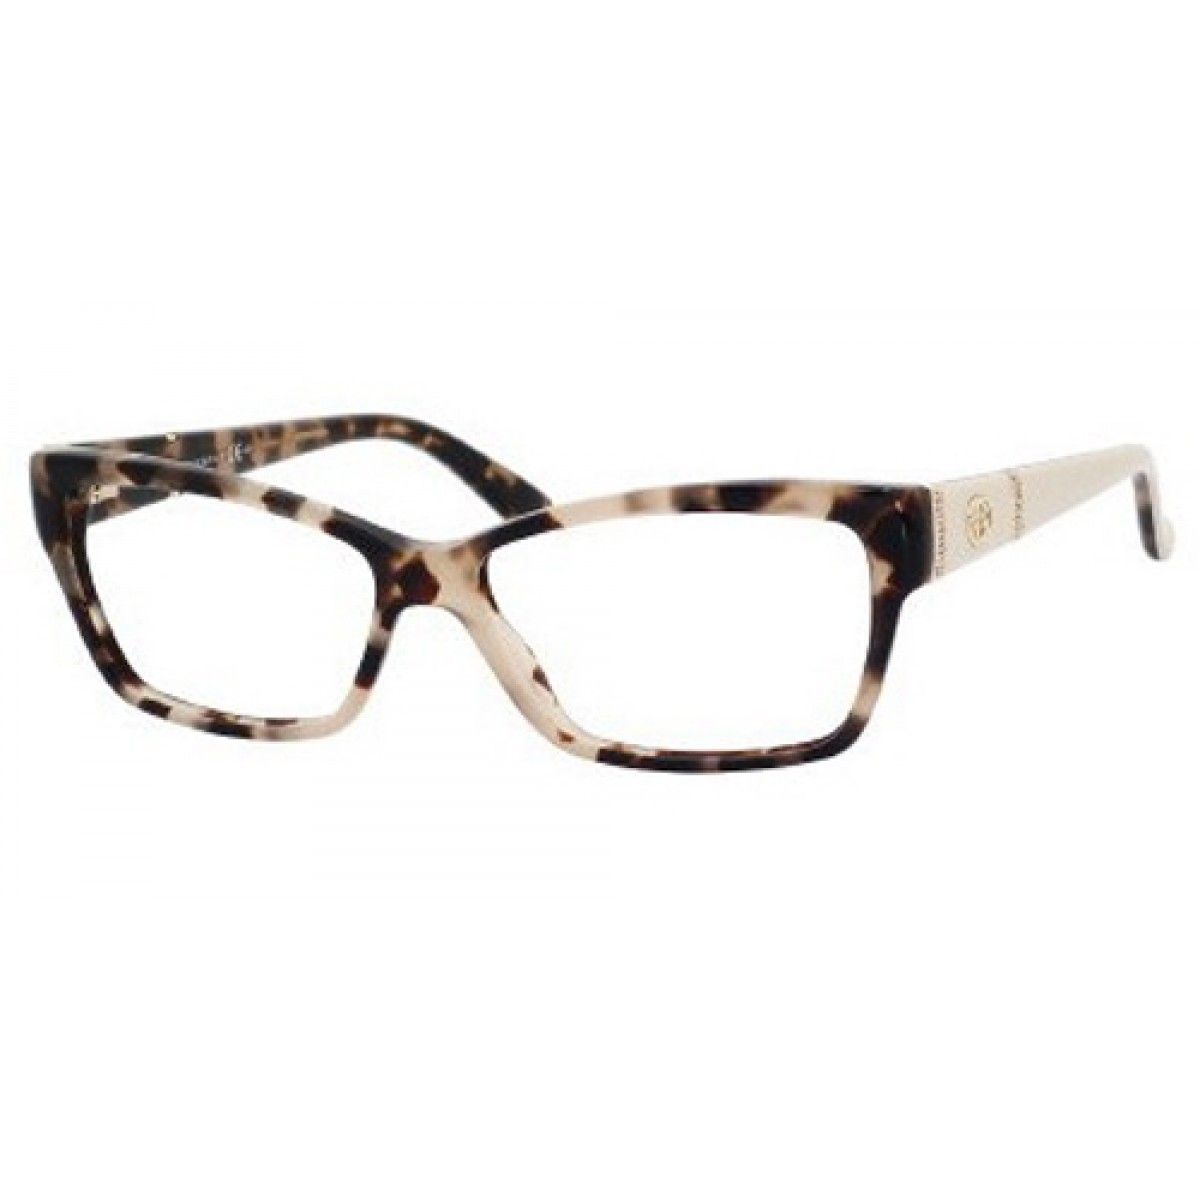 Frames for glasses designer